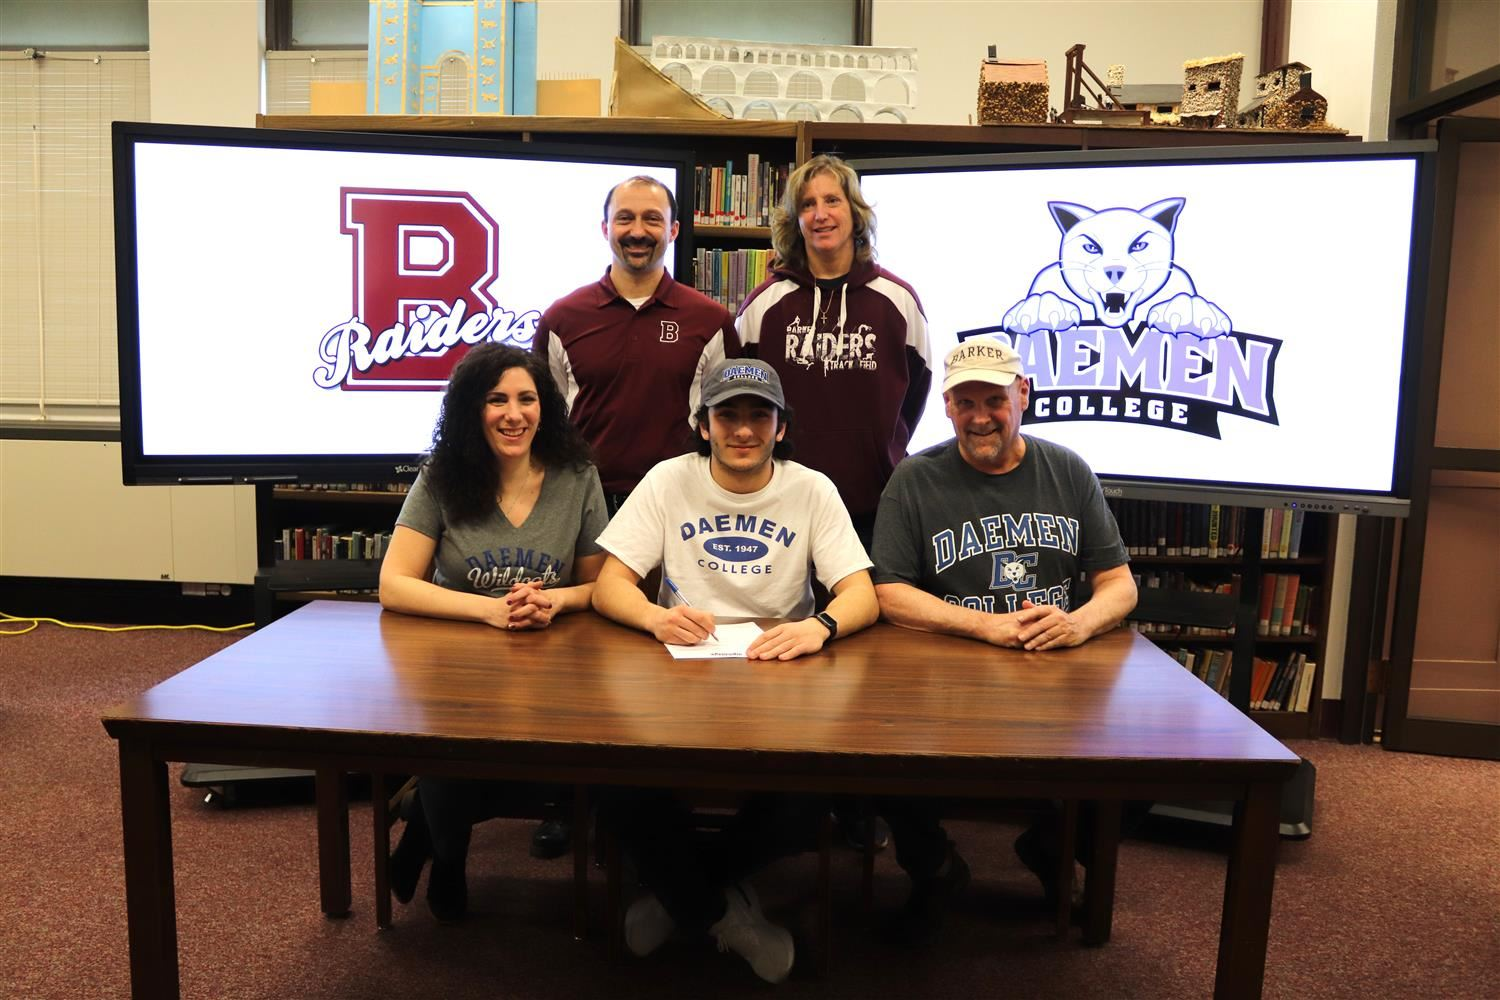 Clementi Plans to Run Both Cross Country & Track at Daemen College